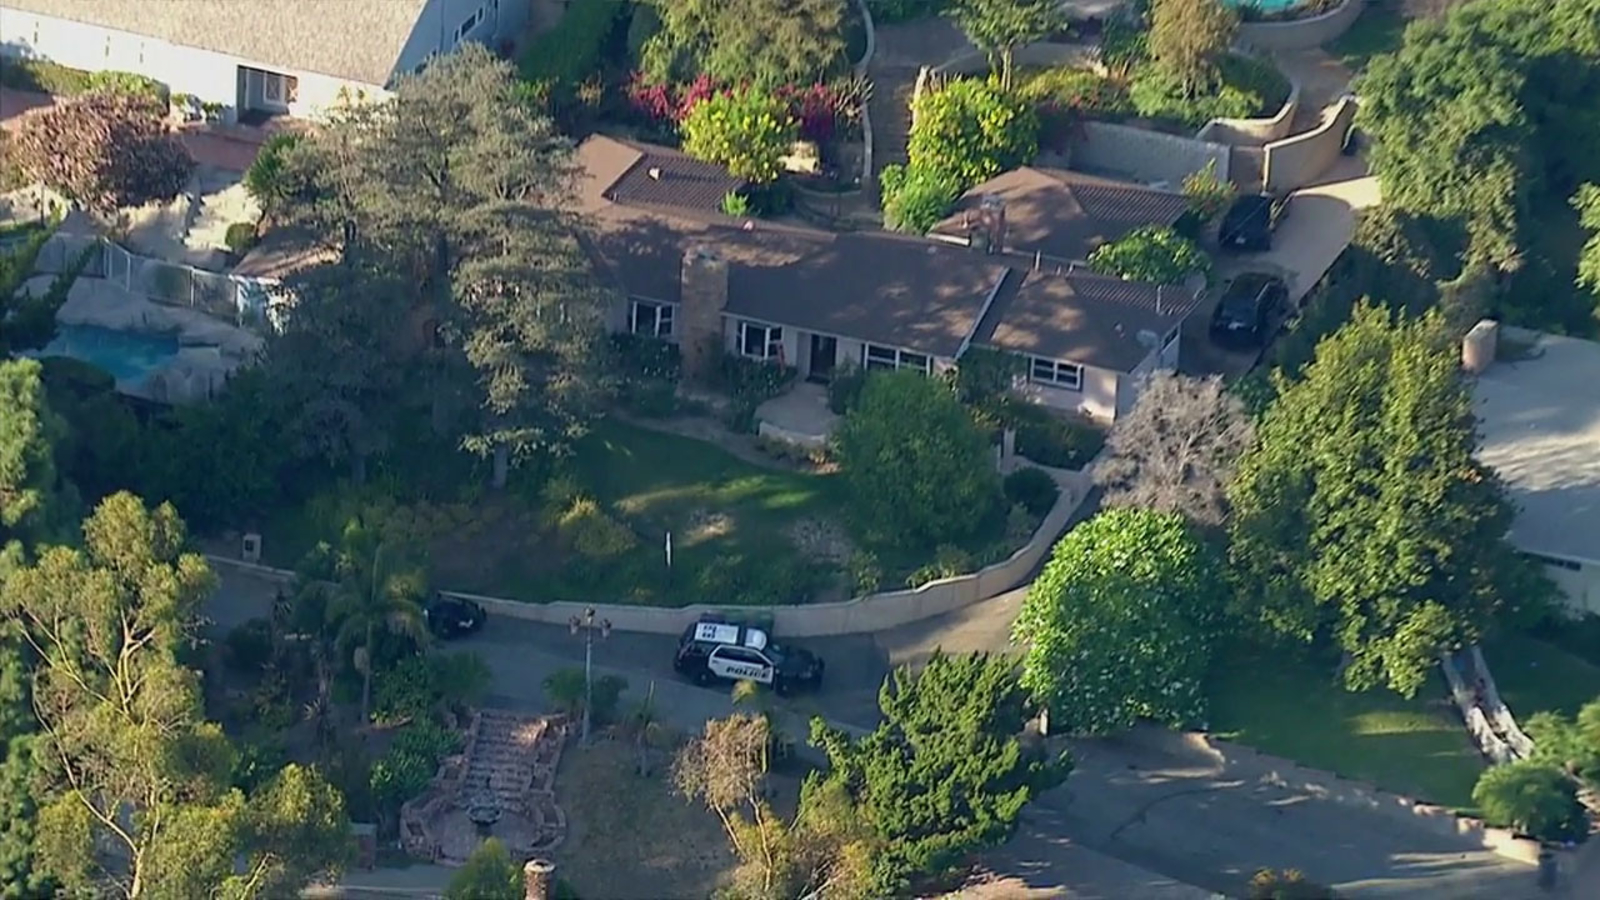 LAPD employee found shot to death in Whittier home